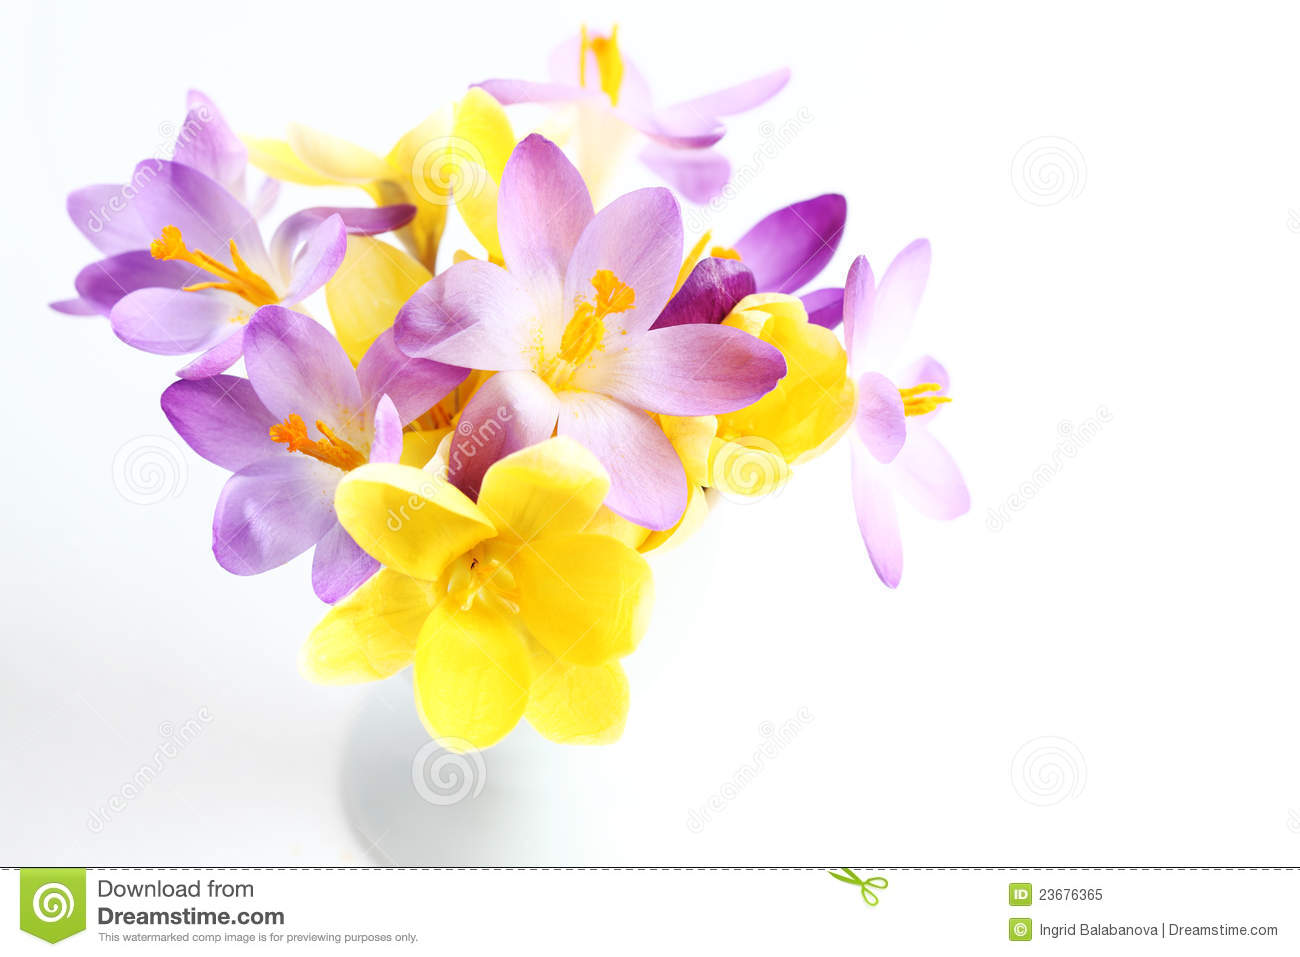 Spring flowers on white background stock image image of life download comp mightylinksfo